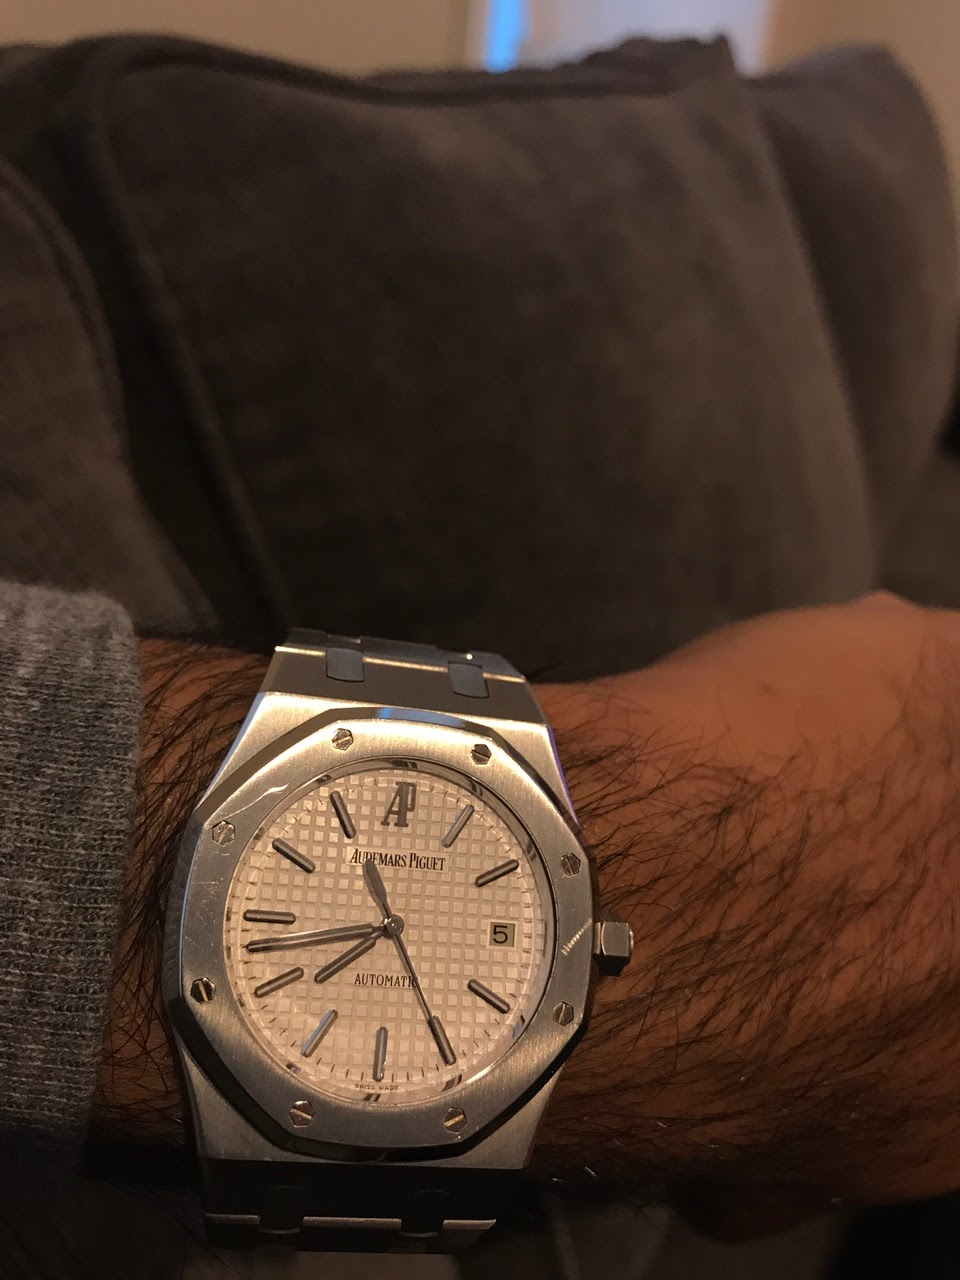 Audemars Piguet To Polish Or Not To Polish